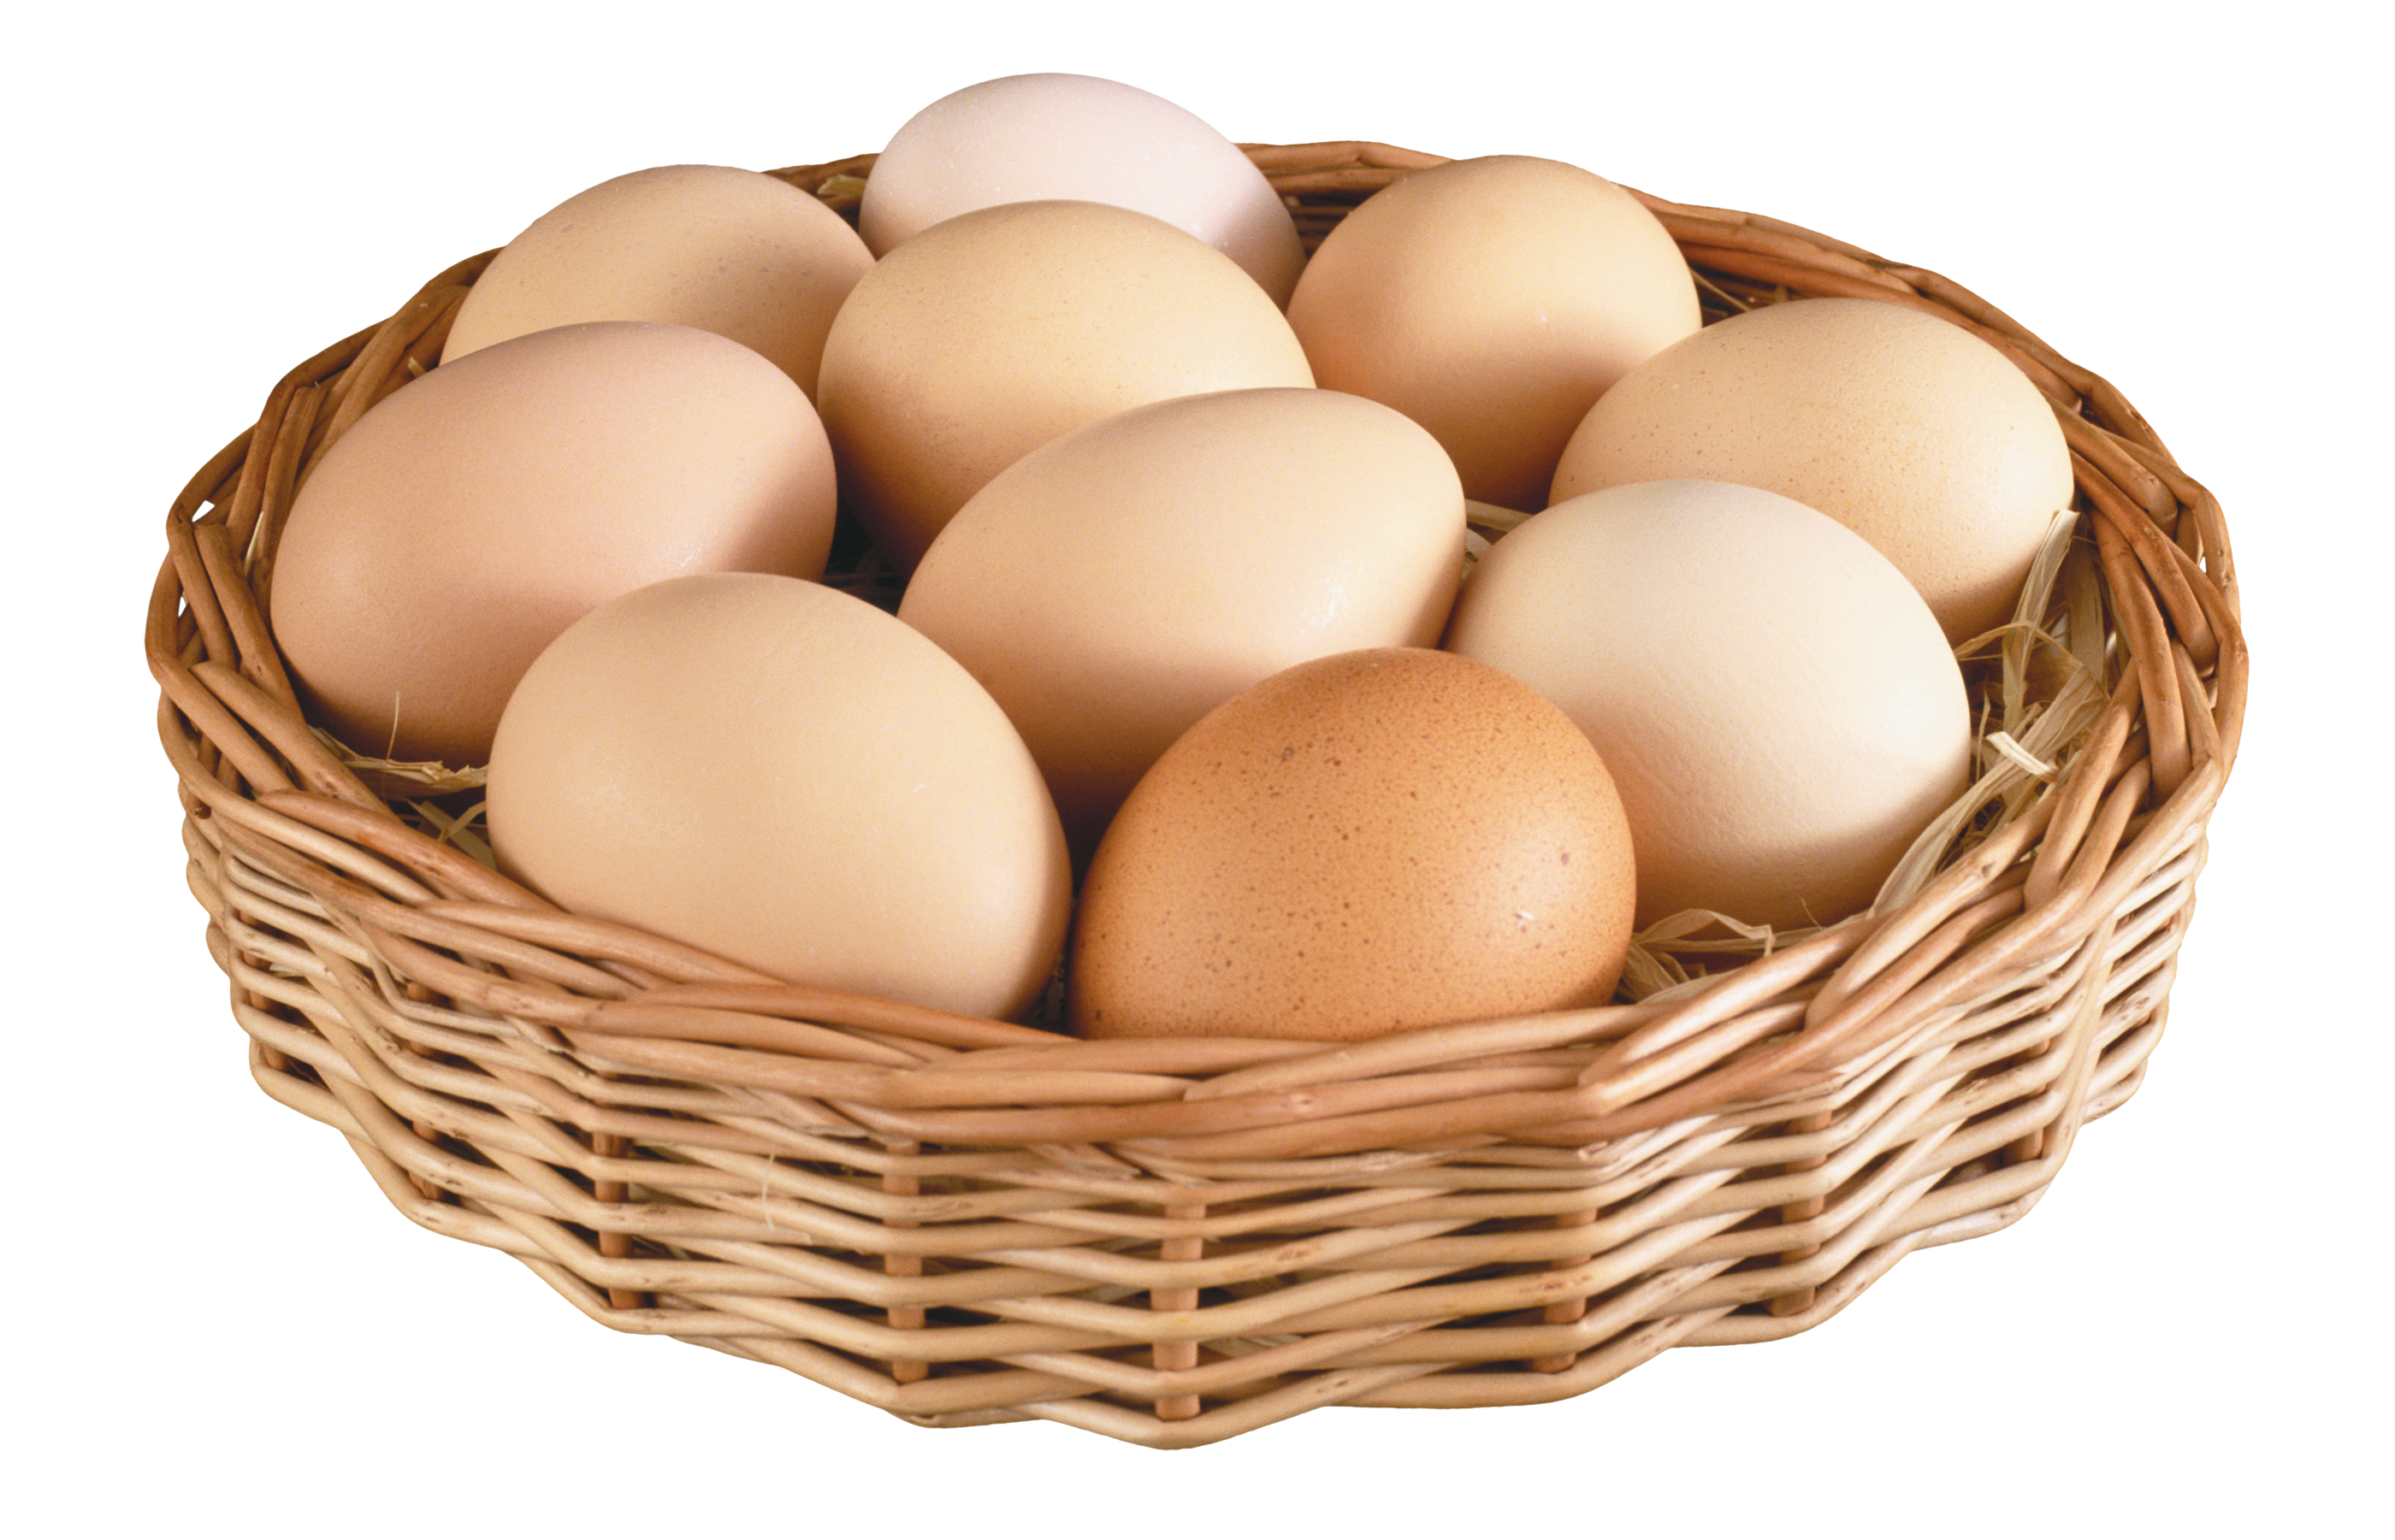 egg_png24